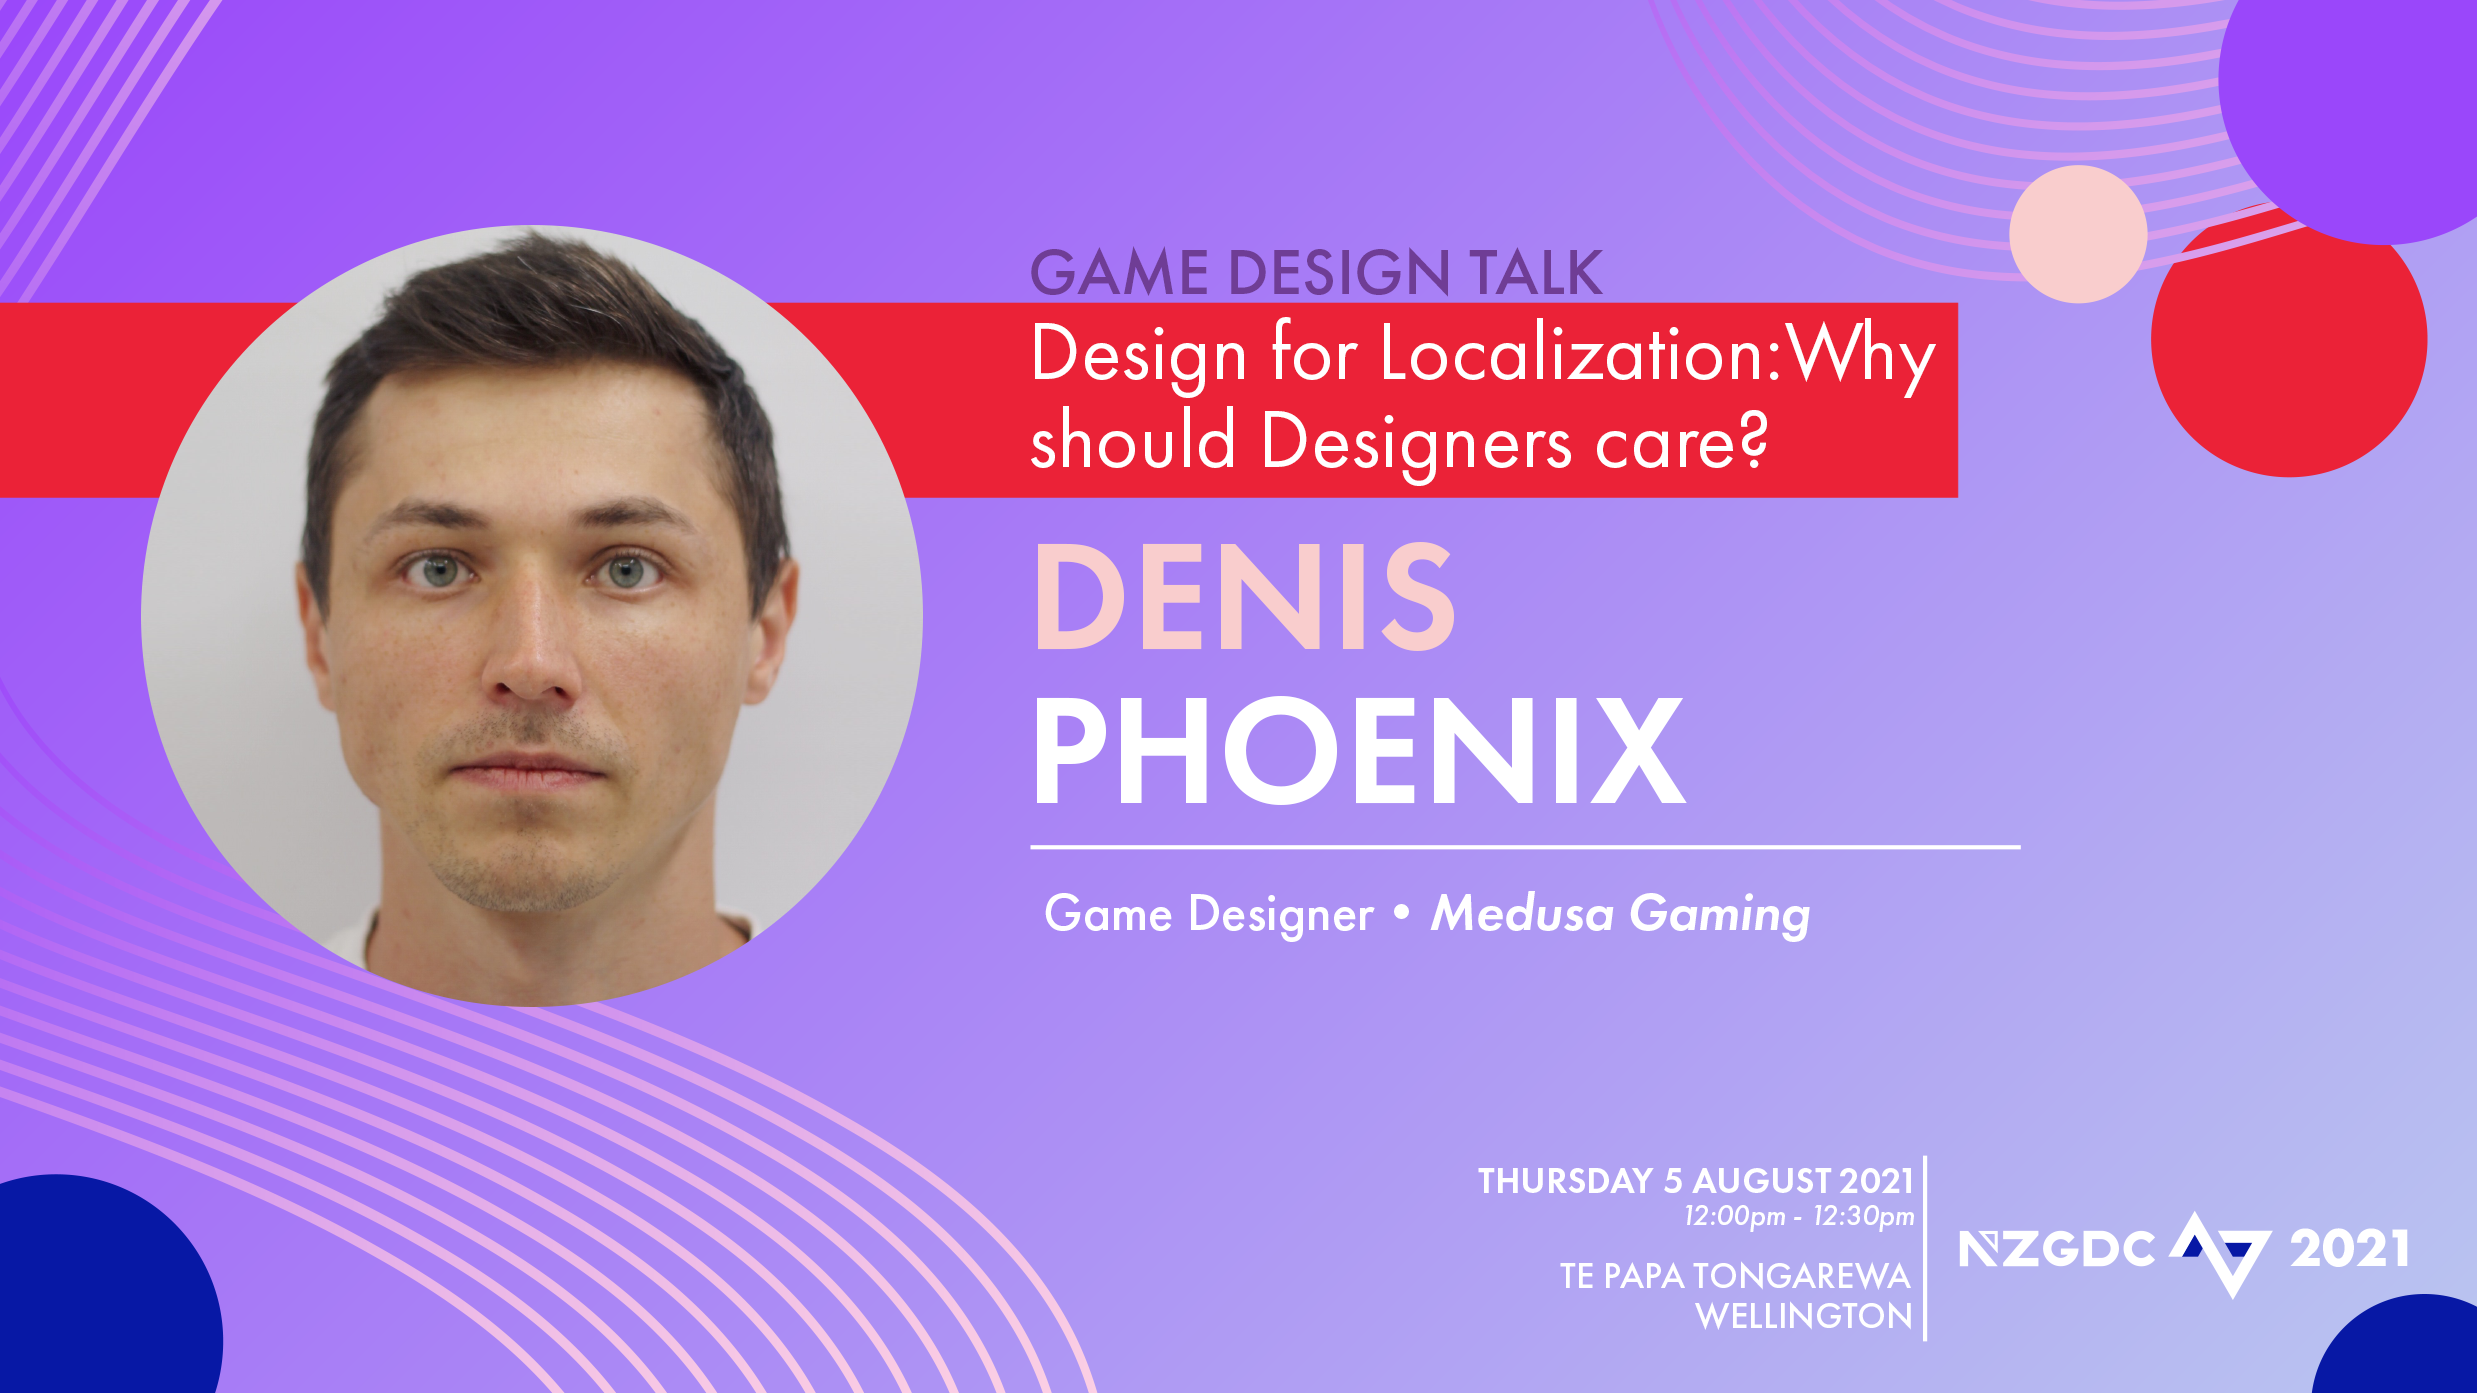 Design for localization: why should designers care?